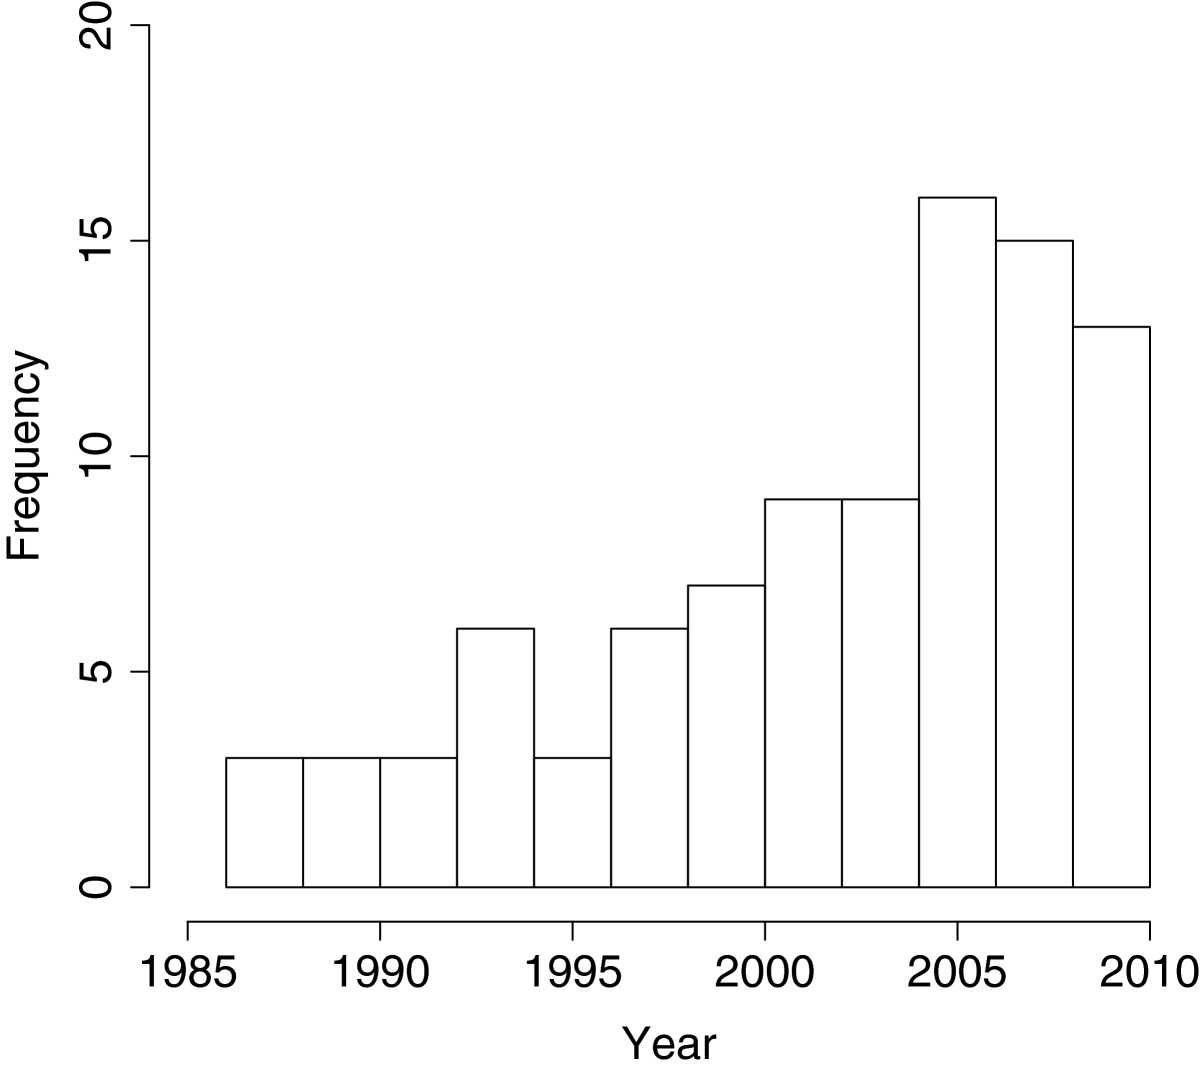 http://static-content.springer.com/image/art%3A10.1186%2F2047-2382-2-13/MediaObjects/13750_2012_Article_27_Fig1_HTML.jpg